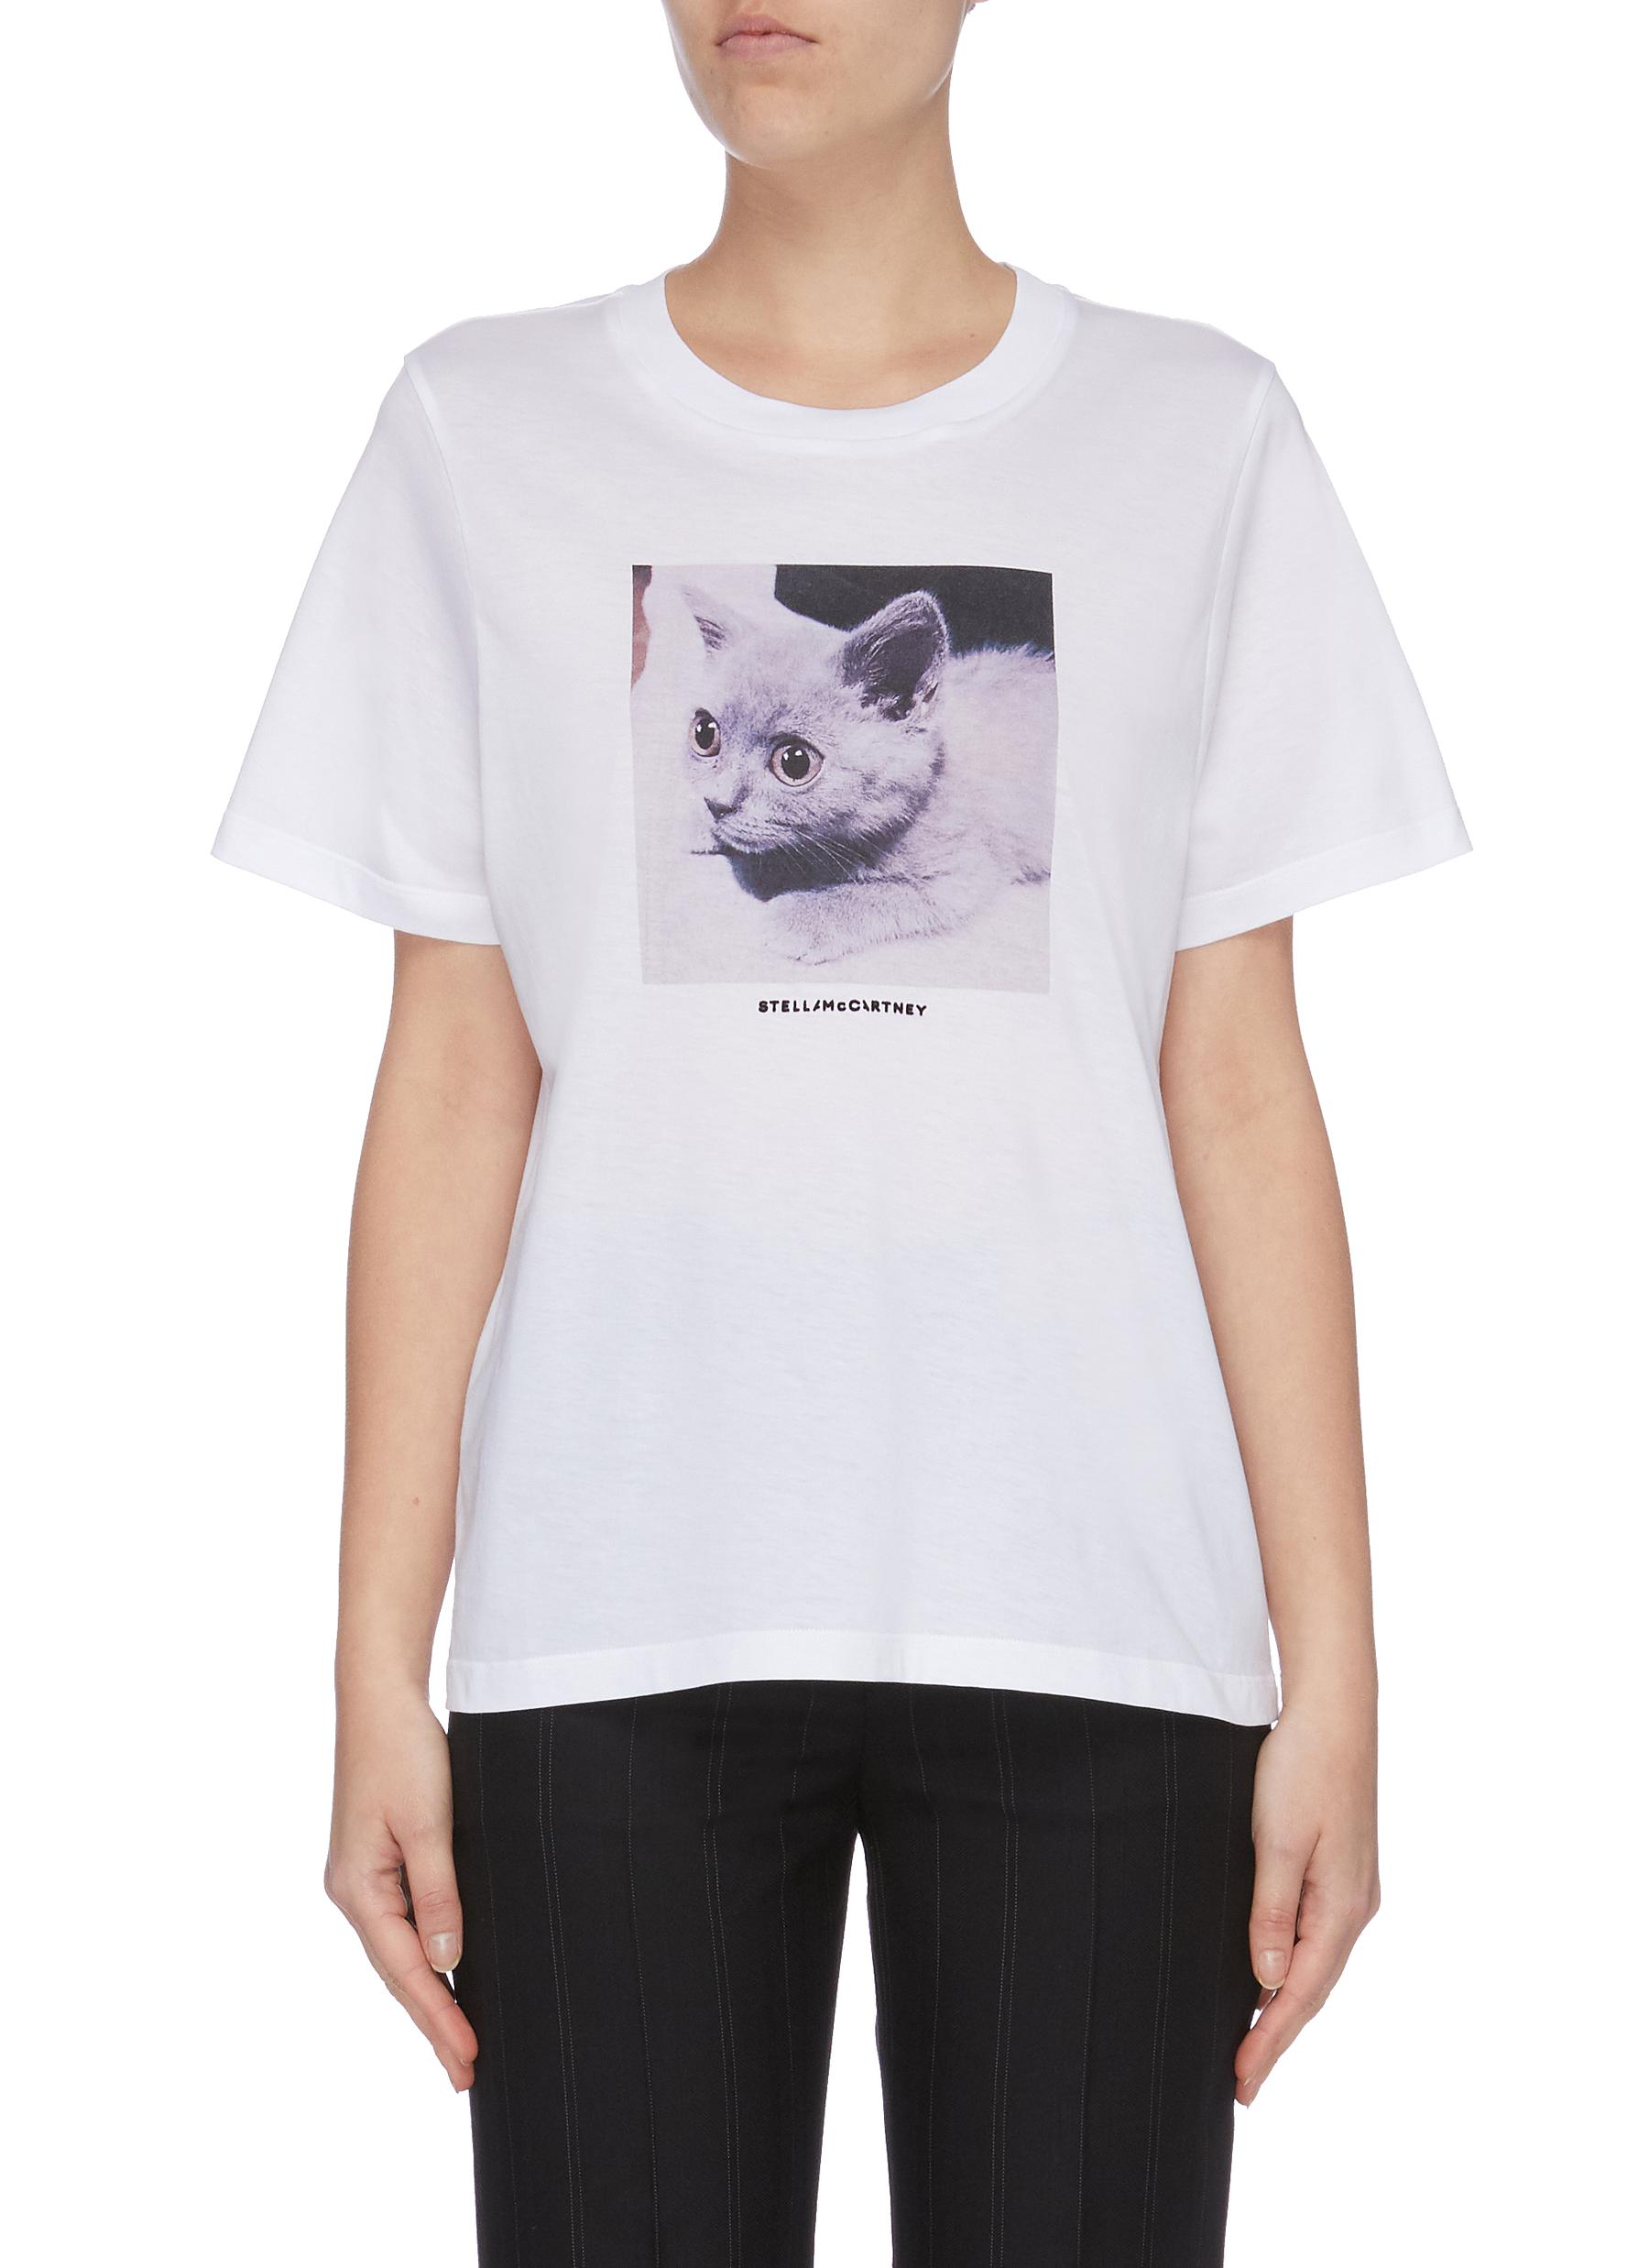 Kitten graphic print T-shirt by Stella Mccartney